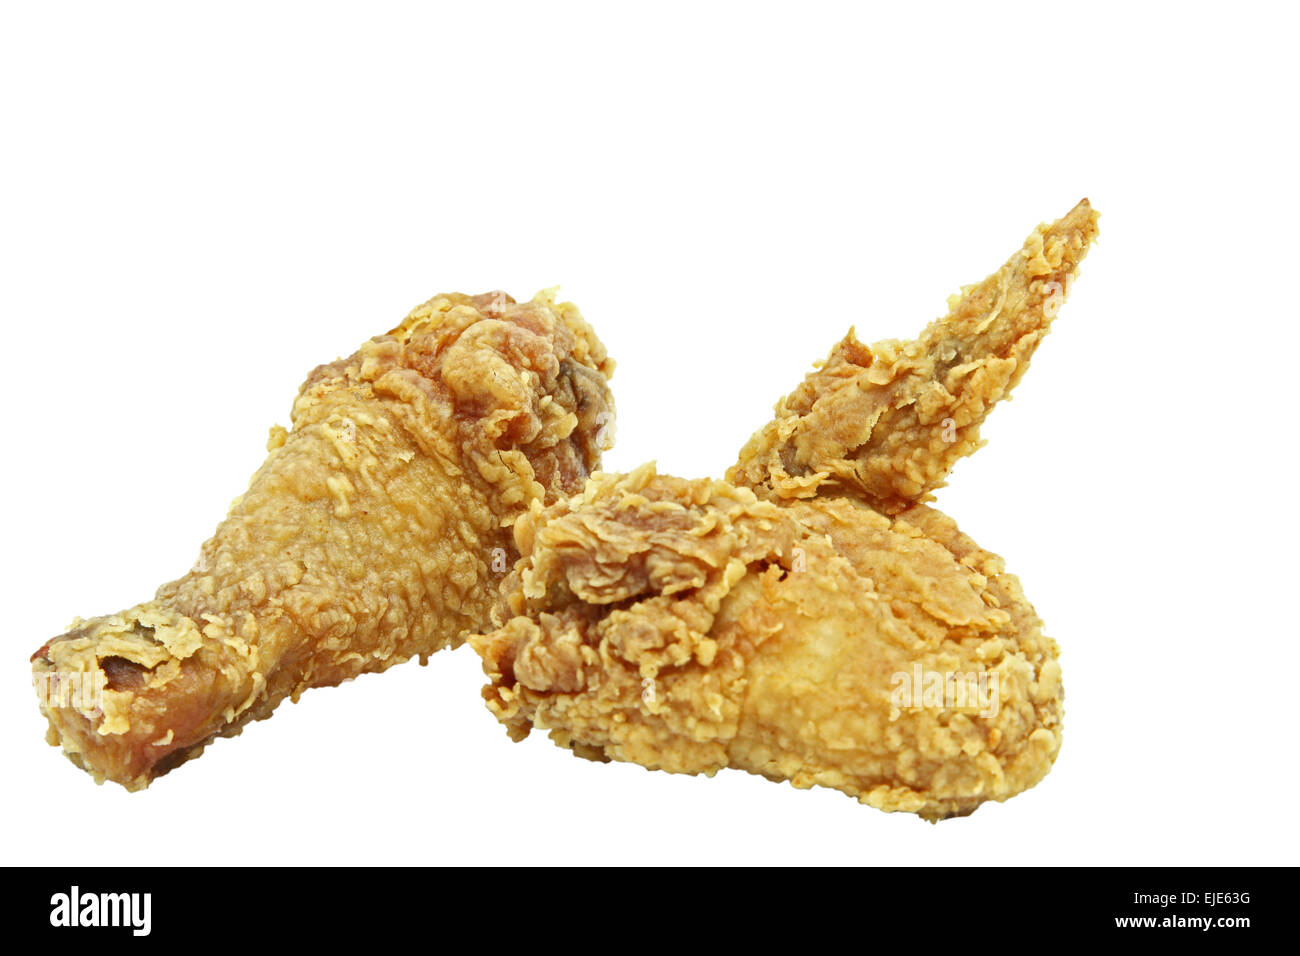 Drumstick Cut Out Stock Images Pictures Alamy Chicken Wings Wing Diagram Crispy And Spicy Fried Image